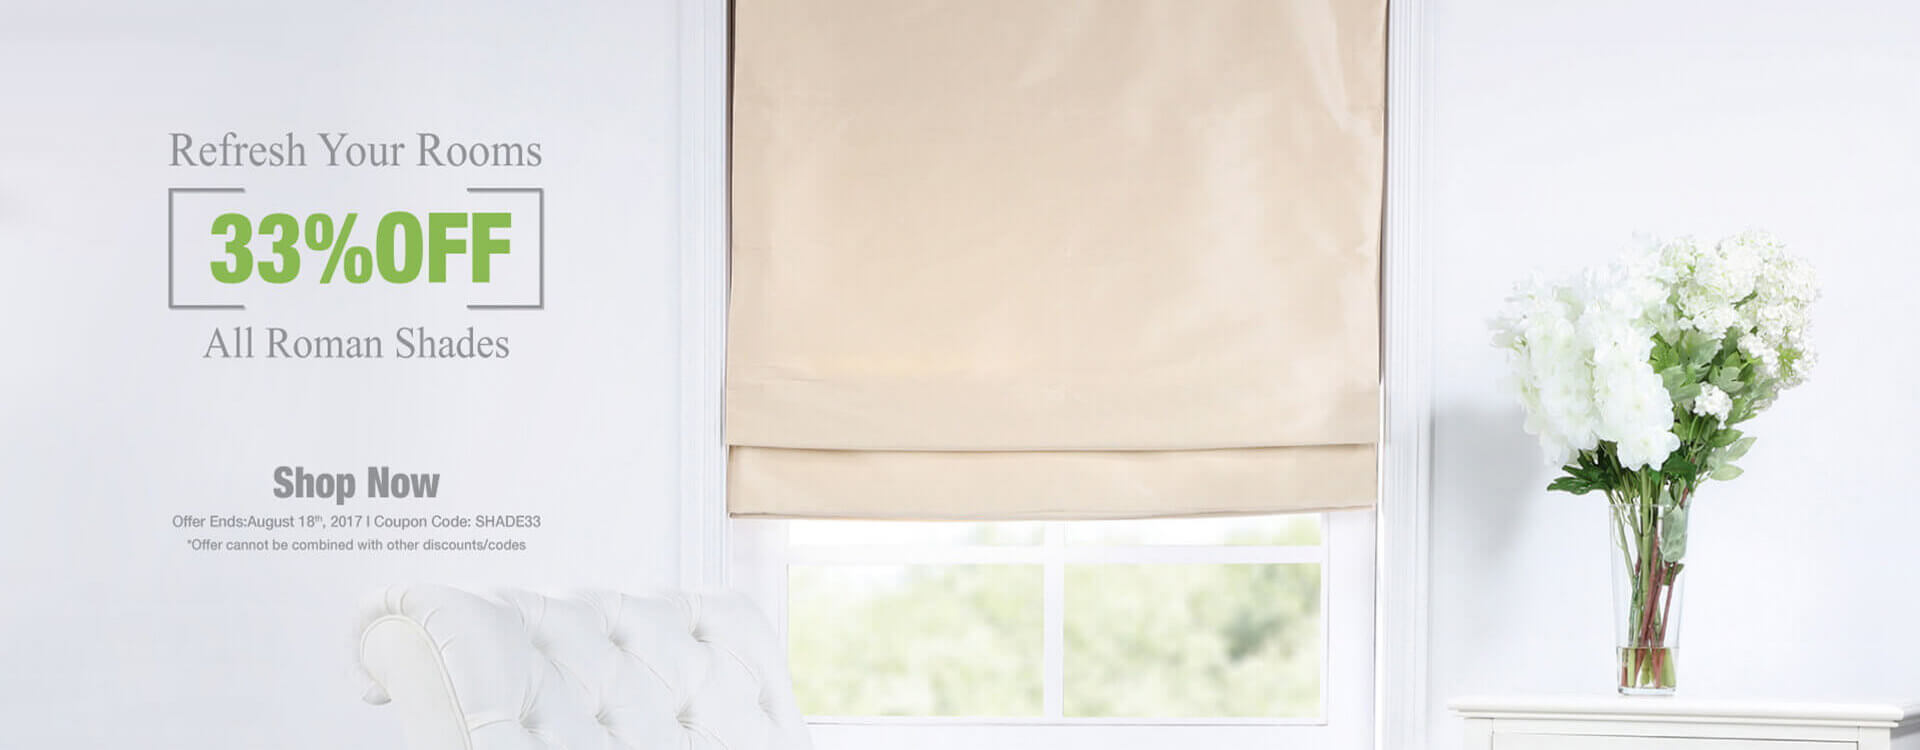 Roman Shades Promotion - Take 33% Off On Selected Items